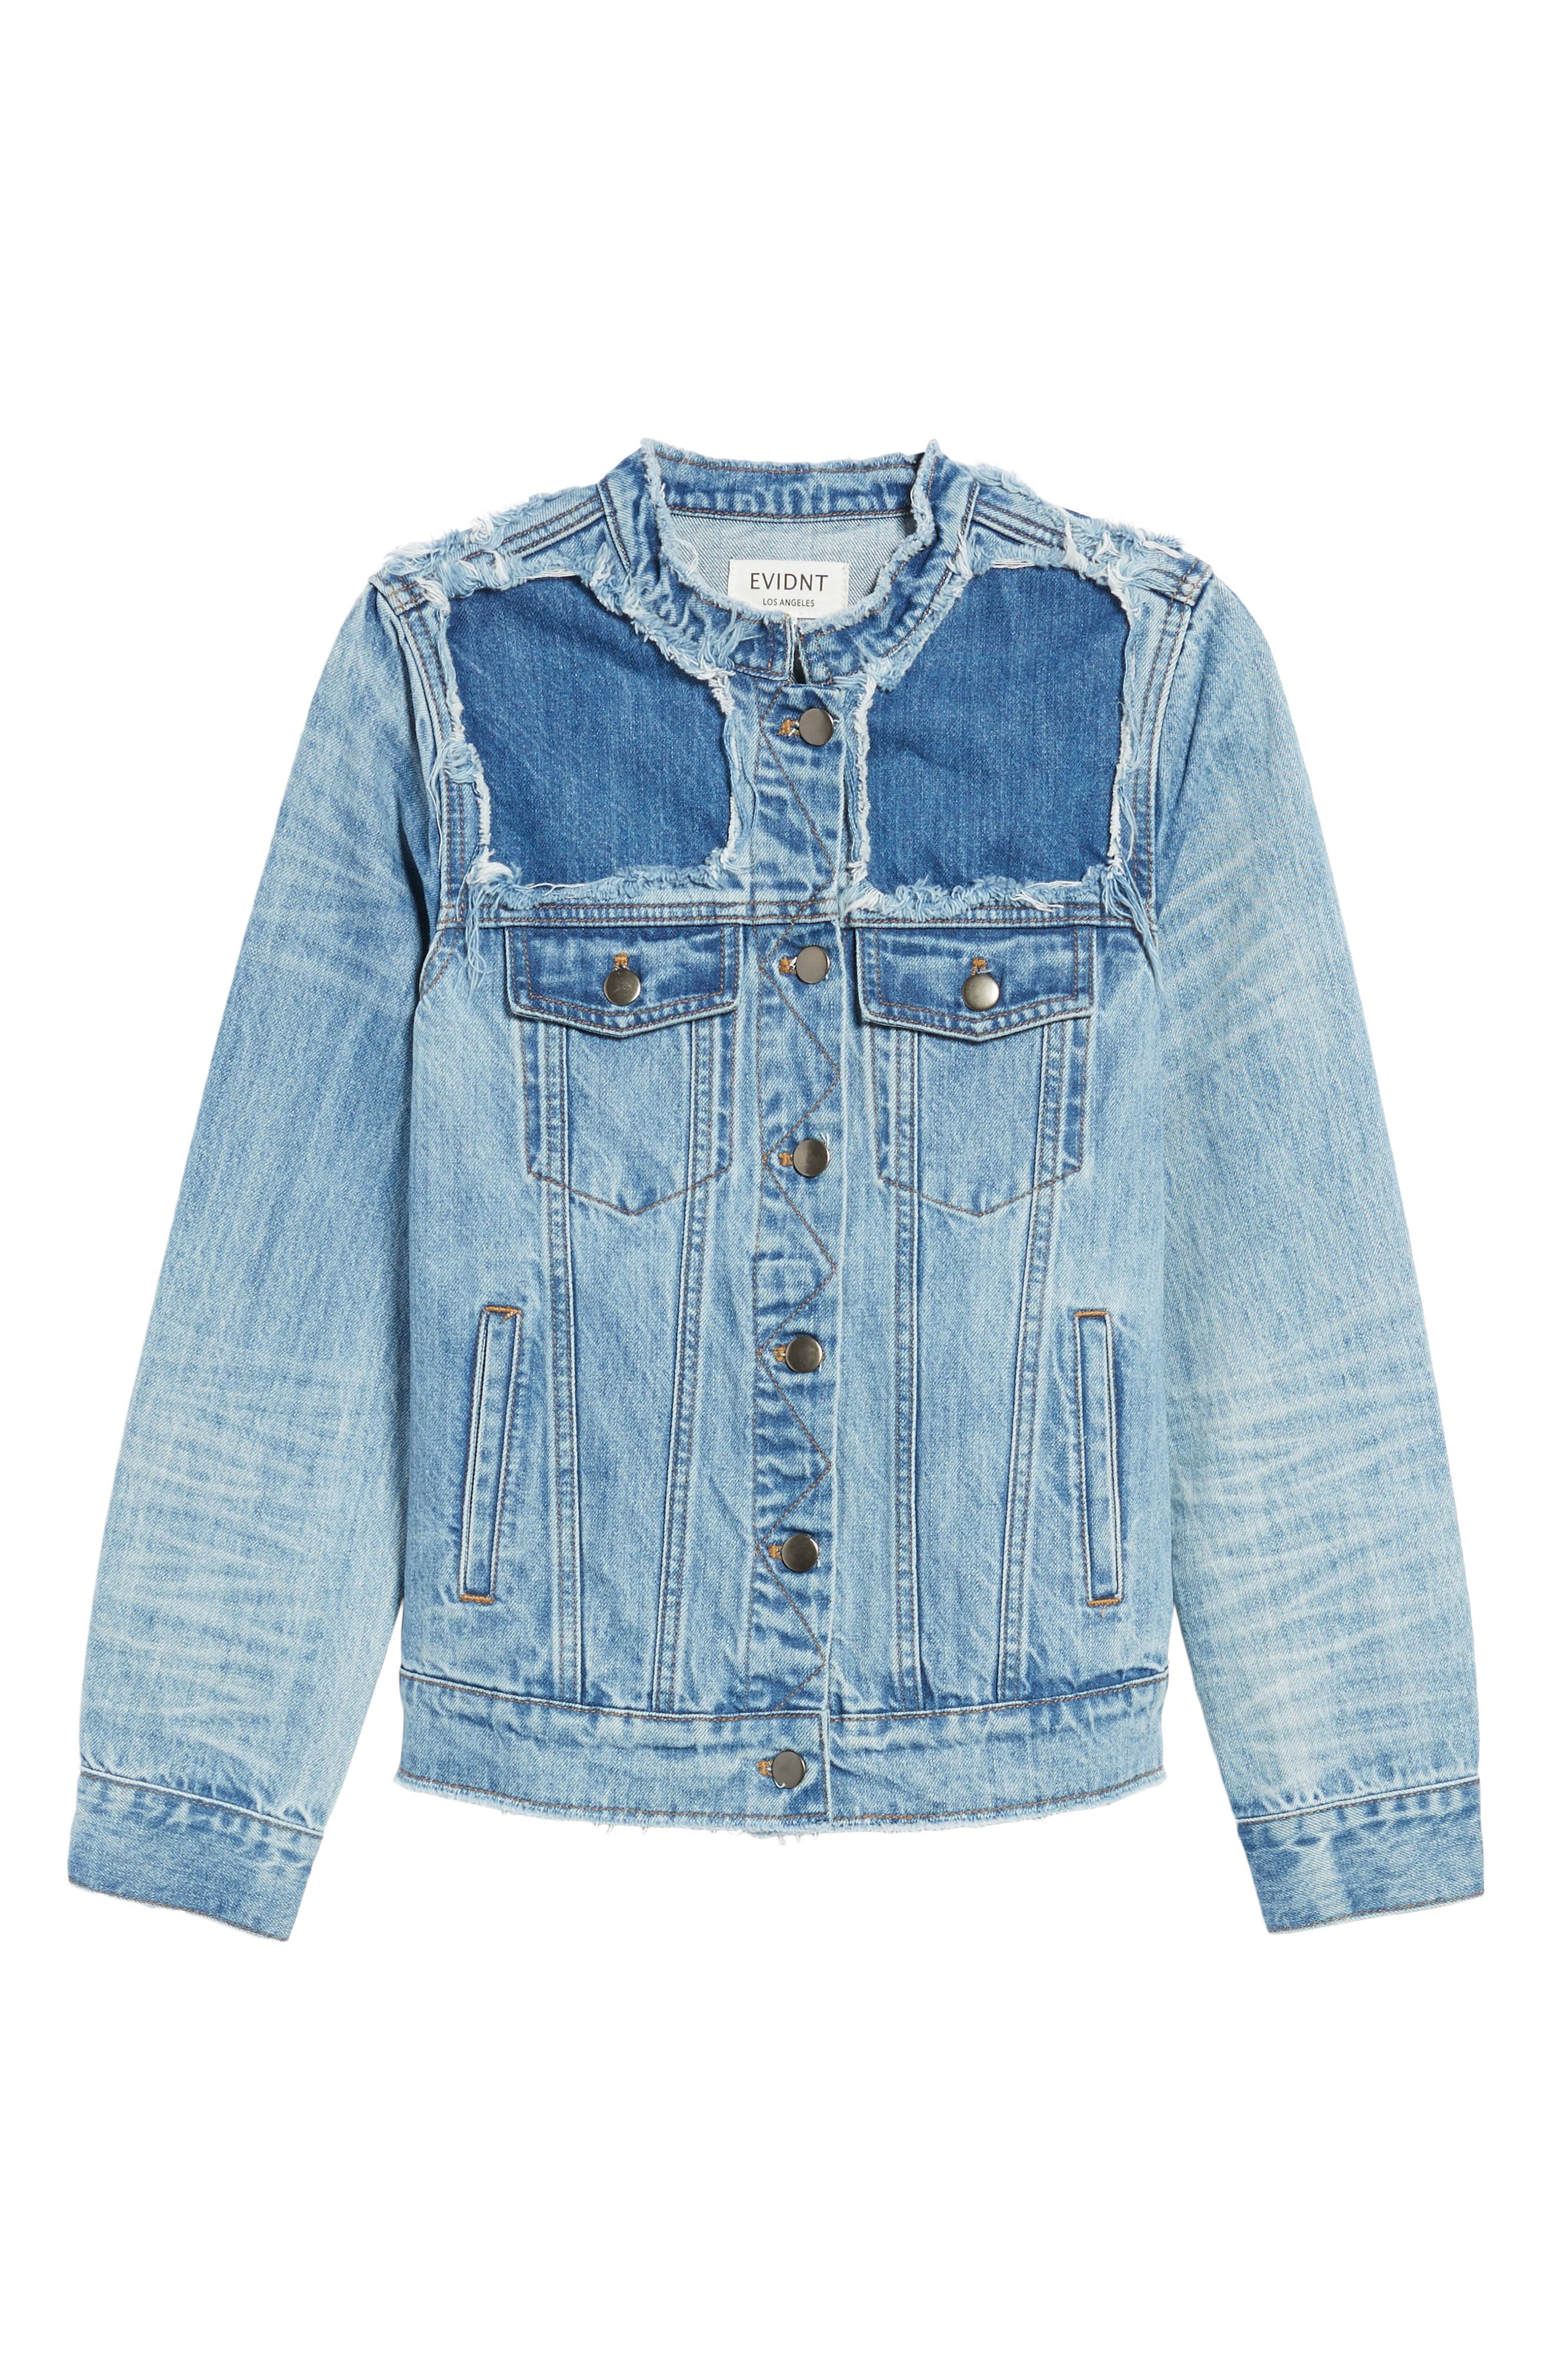 Bastille Jean Jacket,                             Alternate thumbnail 5, color,                             401